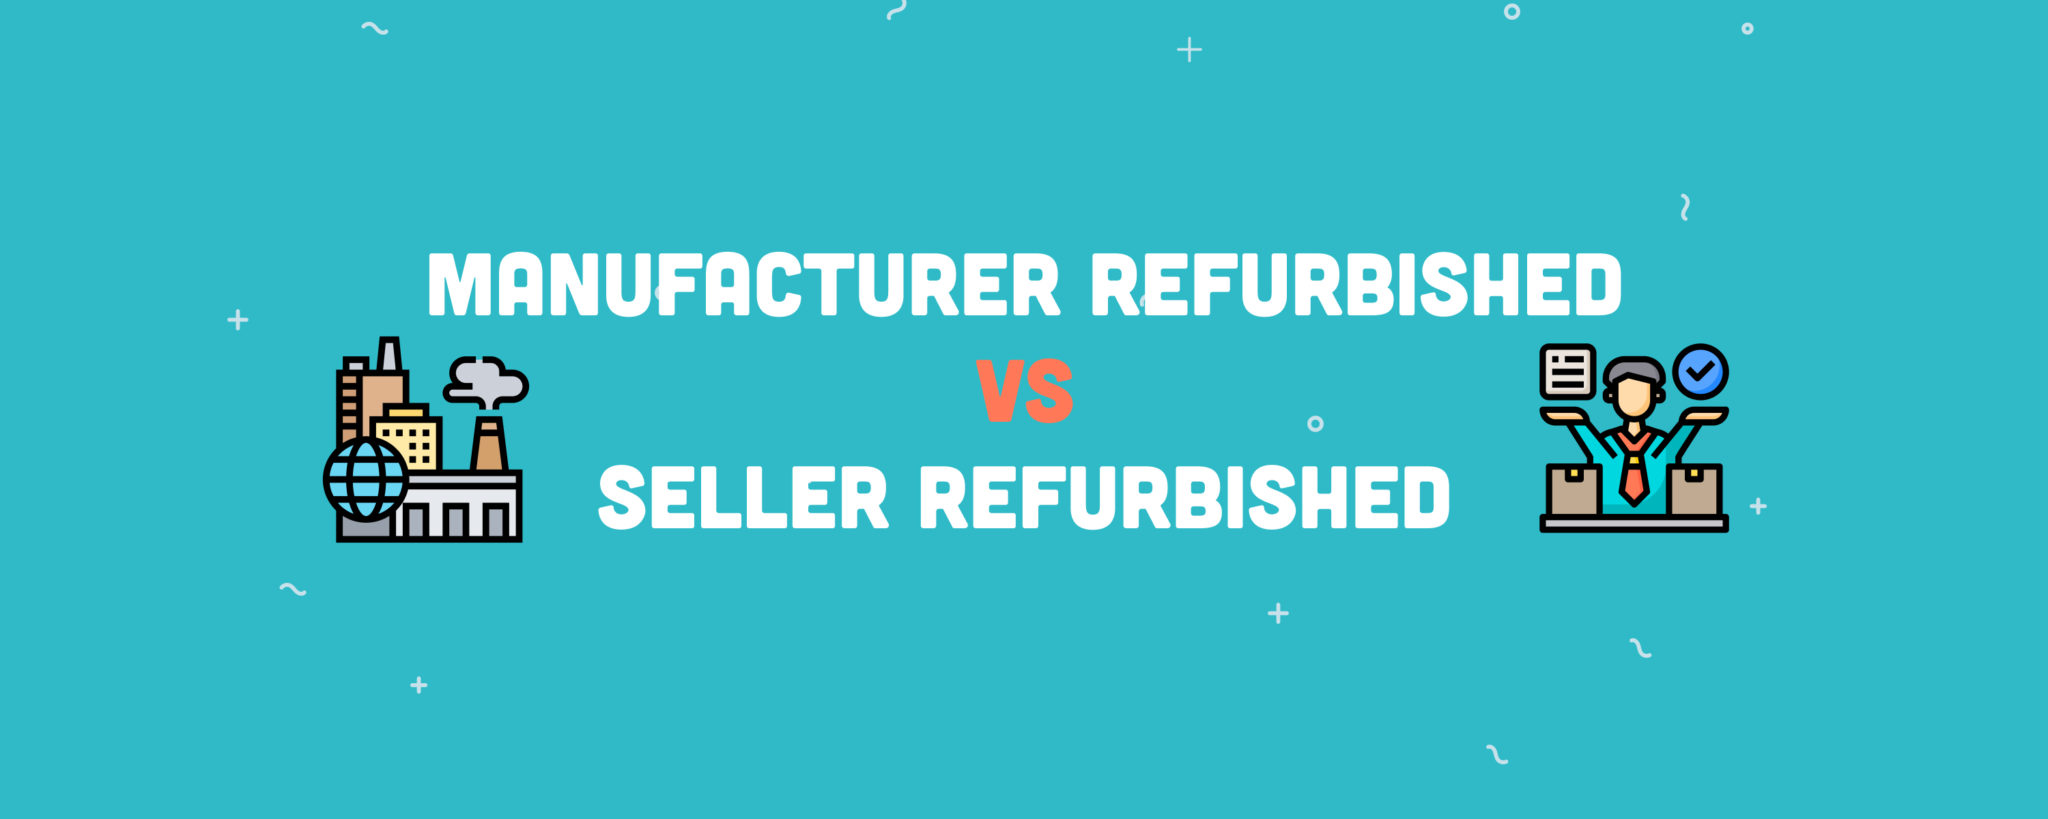 Manufacturer Refurbished VS Seller Refurbished: What Does It Mean?